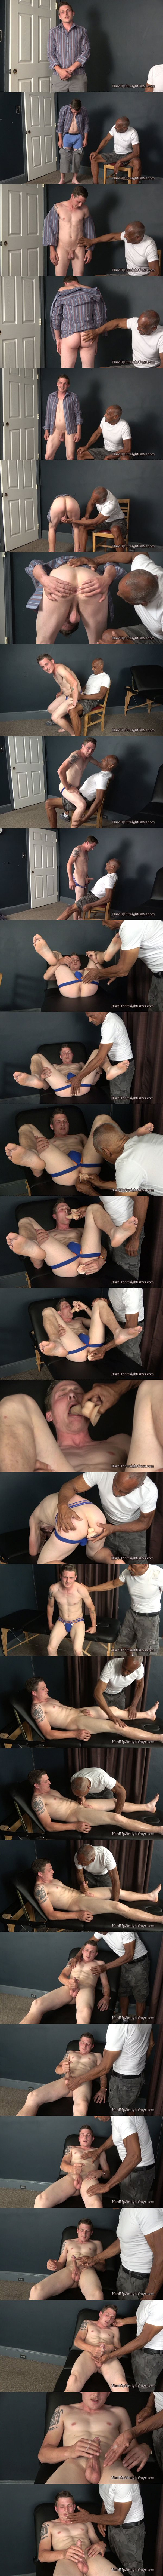 Hot straight muscle jock Romeo gets groped and dildo fucked before he jerks off at Hardupstraightguys 01